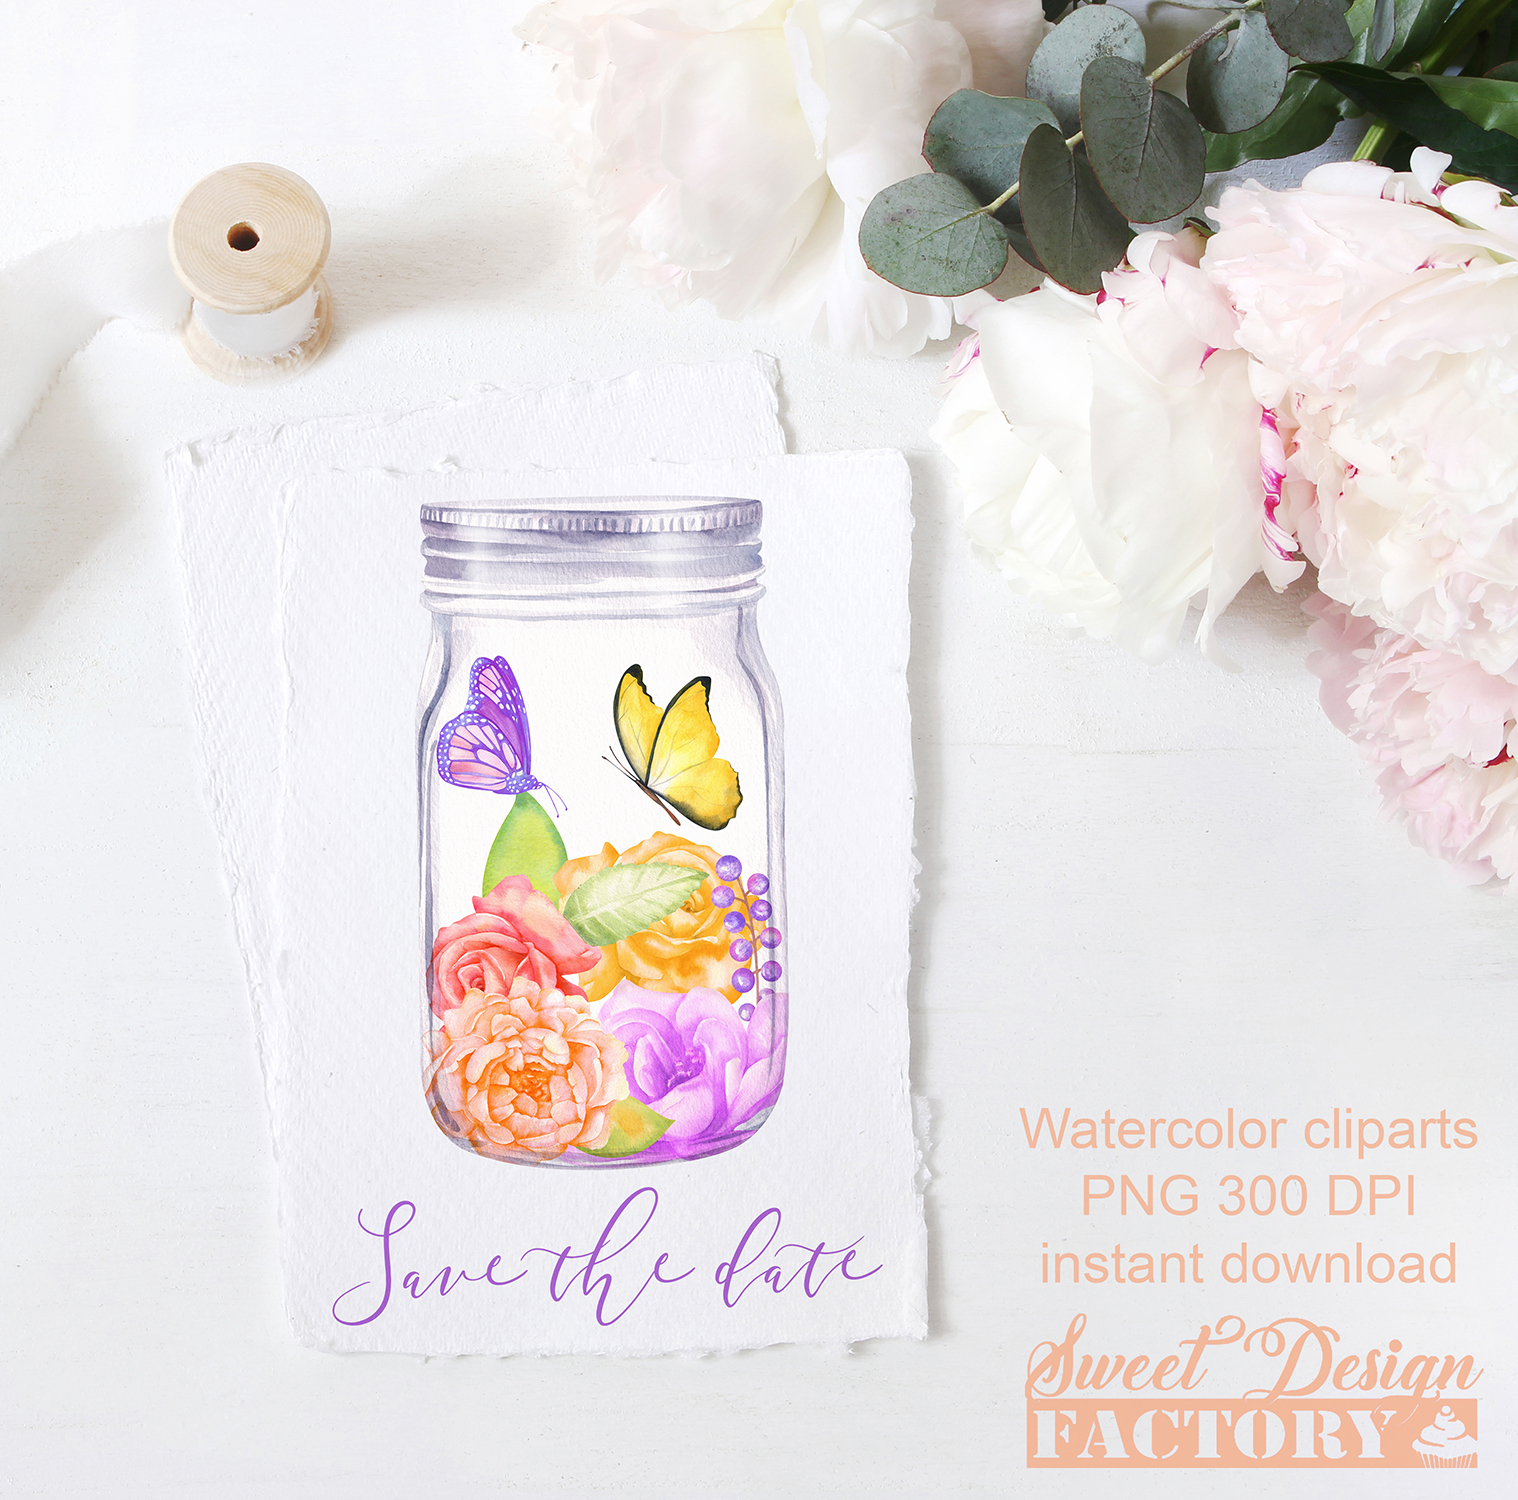 Watercolor floral clipart example image 4